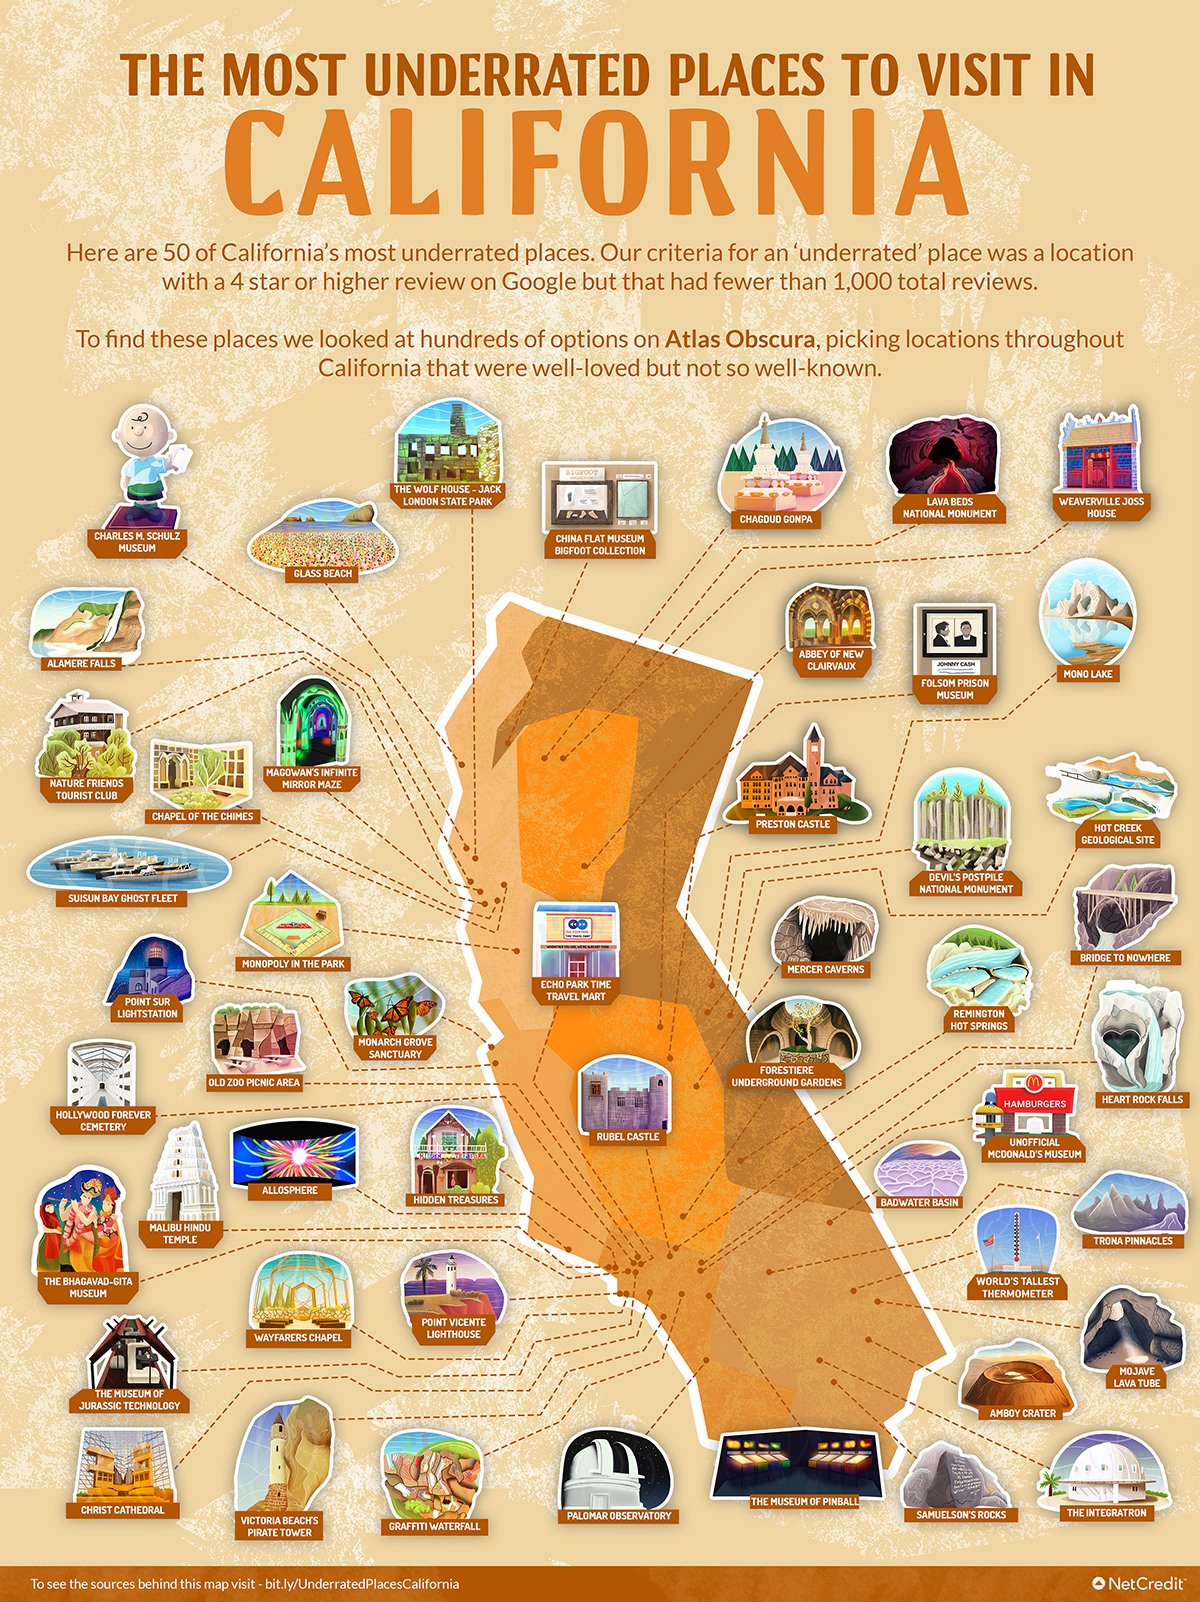 Outline of California pointing out specific places that are worth a visit